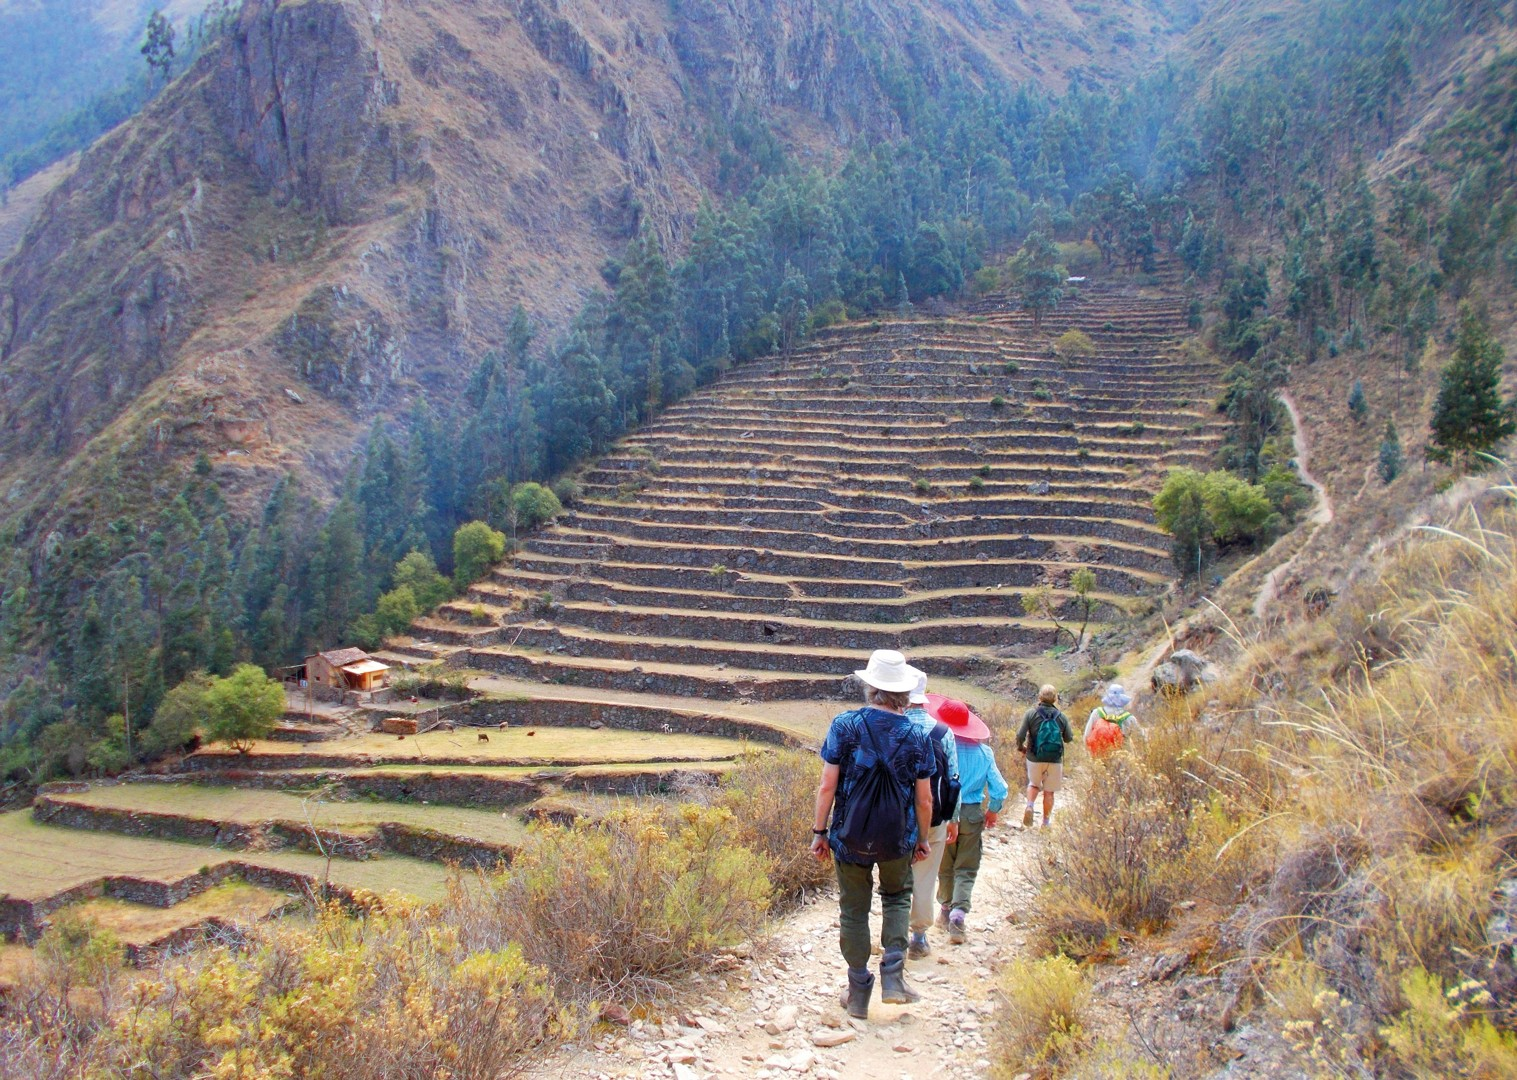 Peru Inca Trails .jpg - Inca Trails in Peru - Meet the People Tours